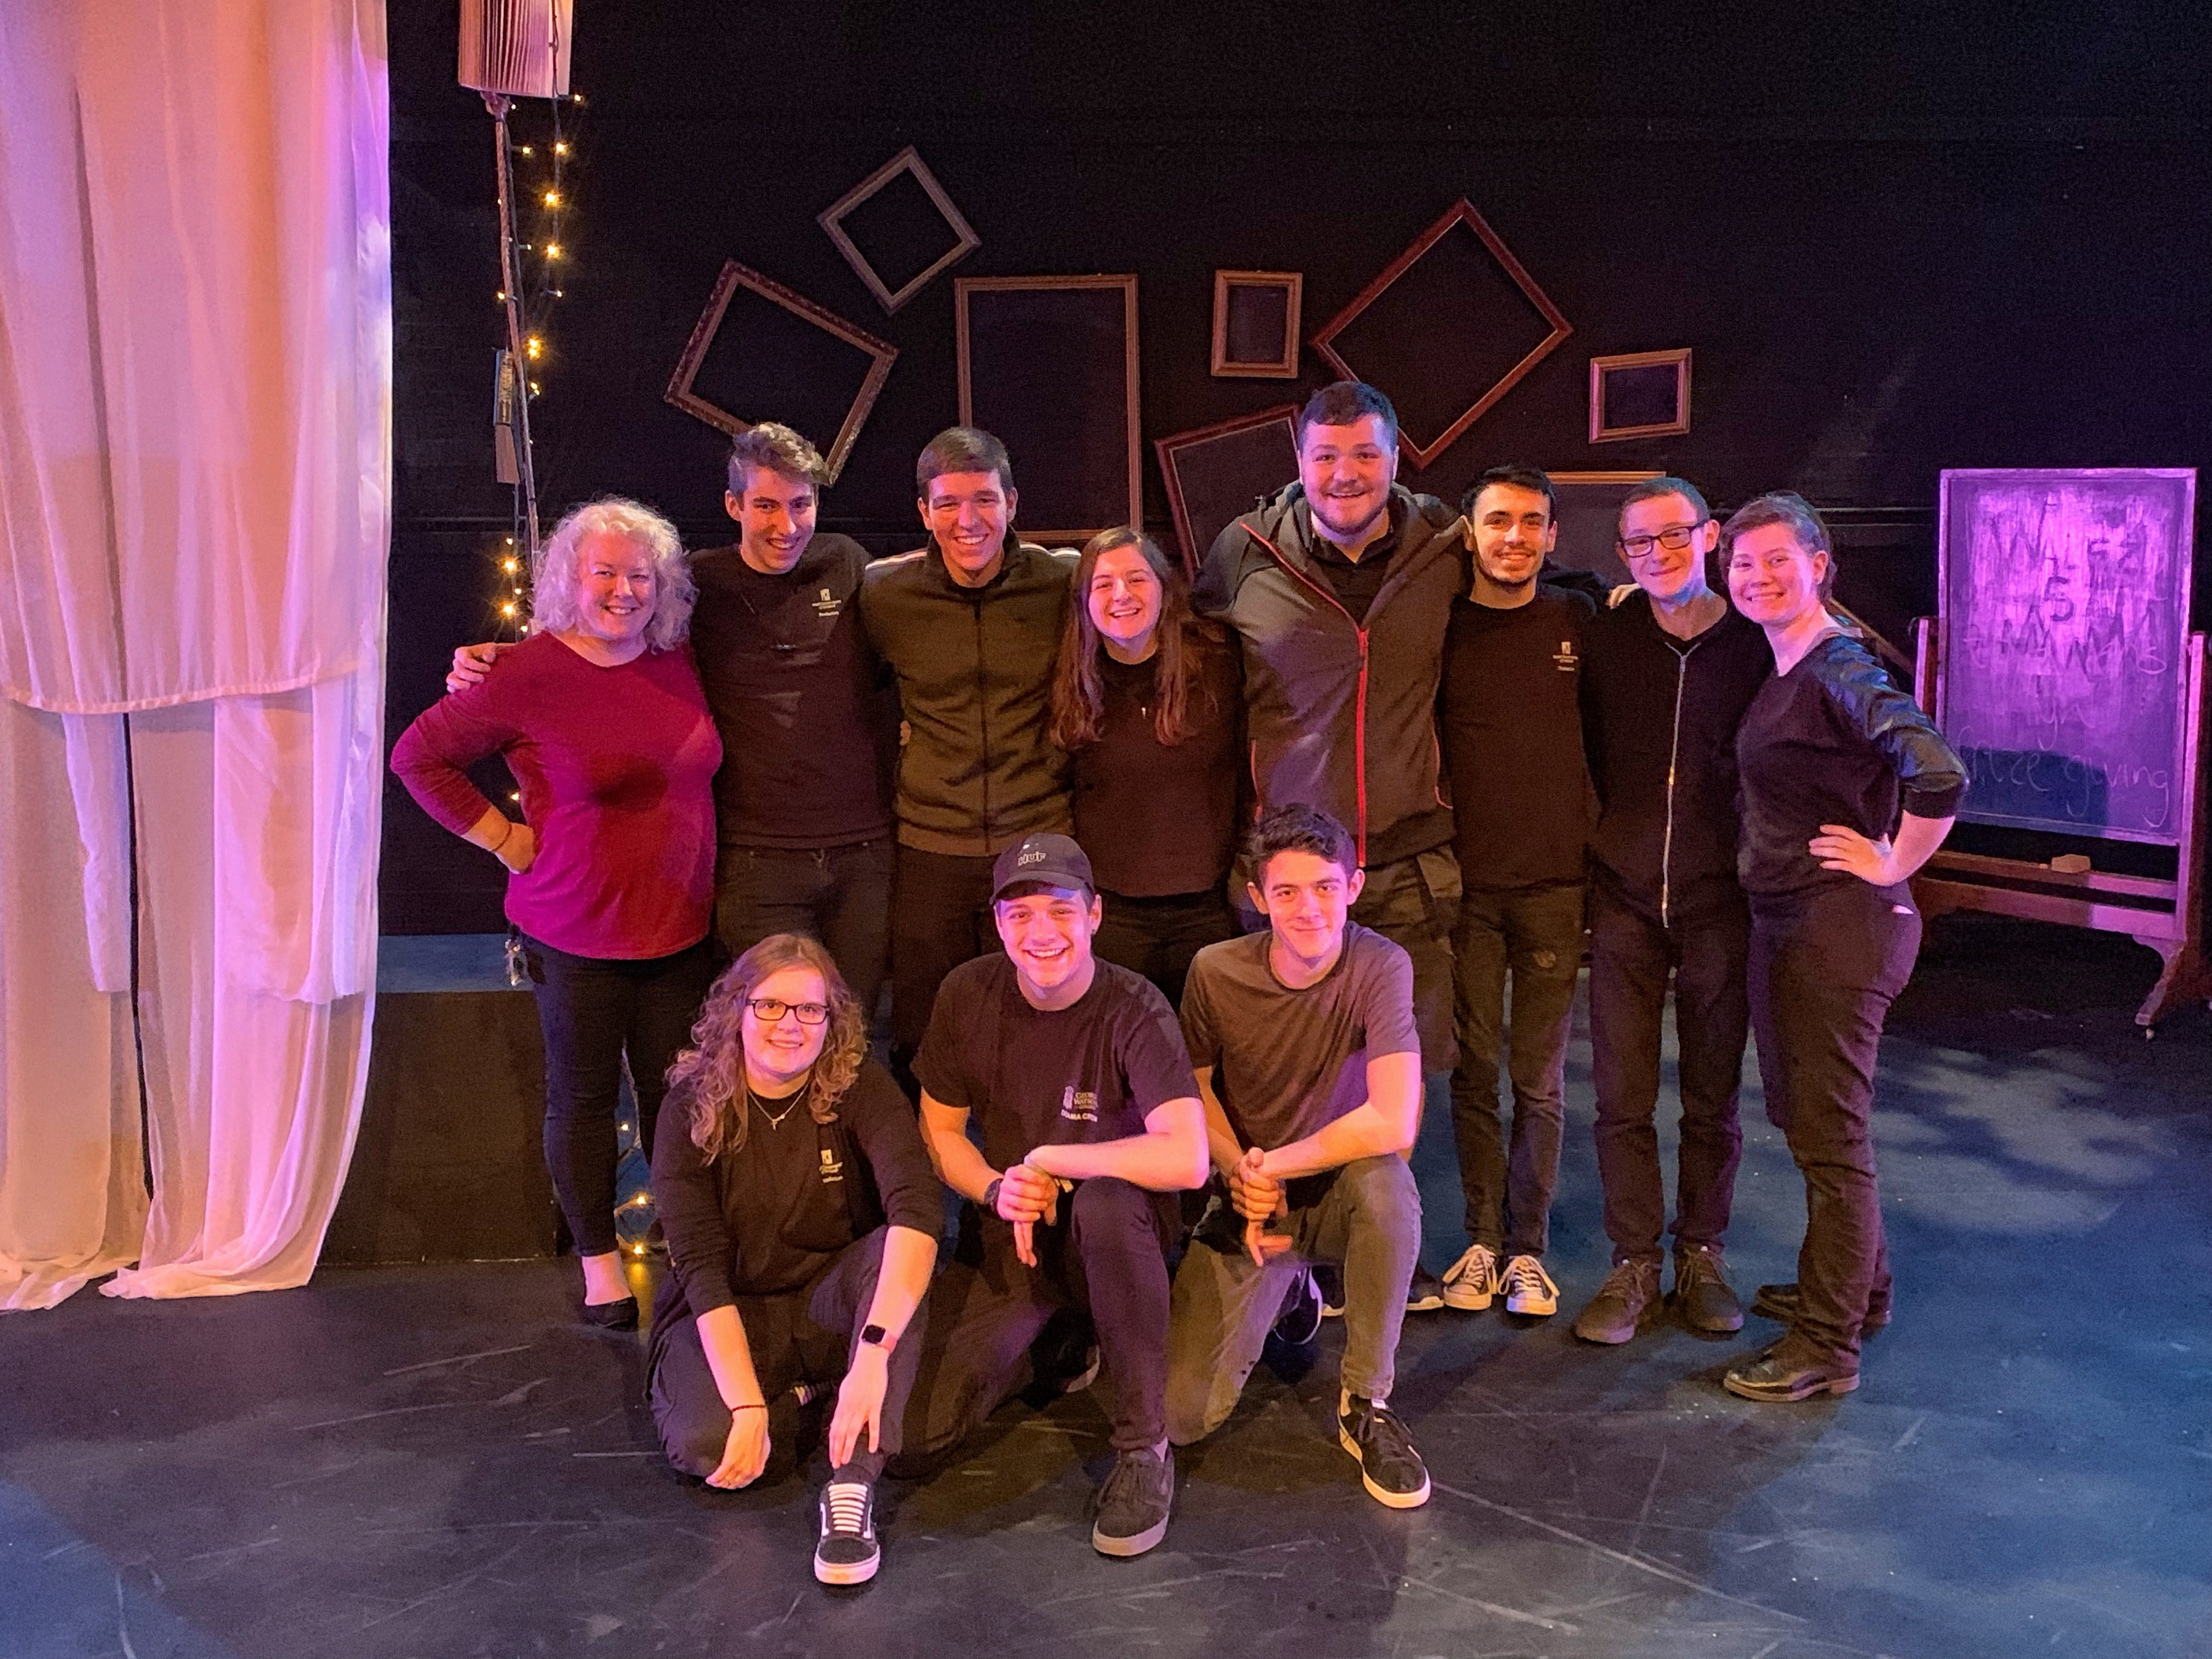 Group photo of the Production team who worked behind the scenes on a Midsummer Night's Dream